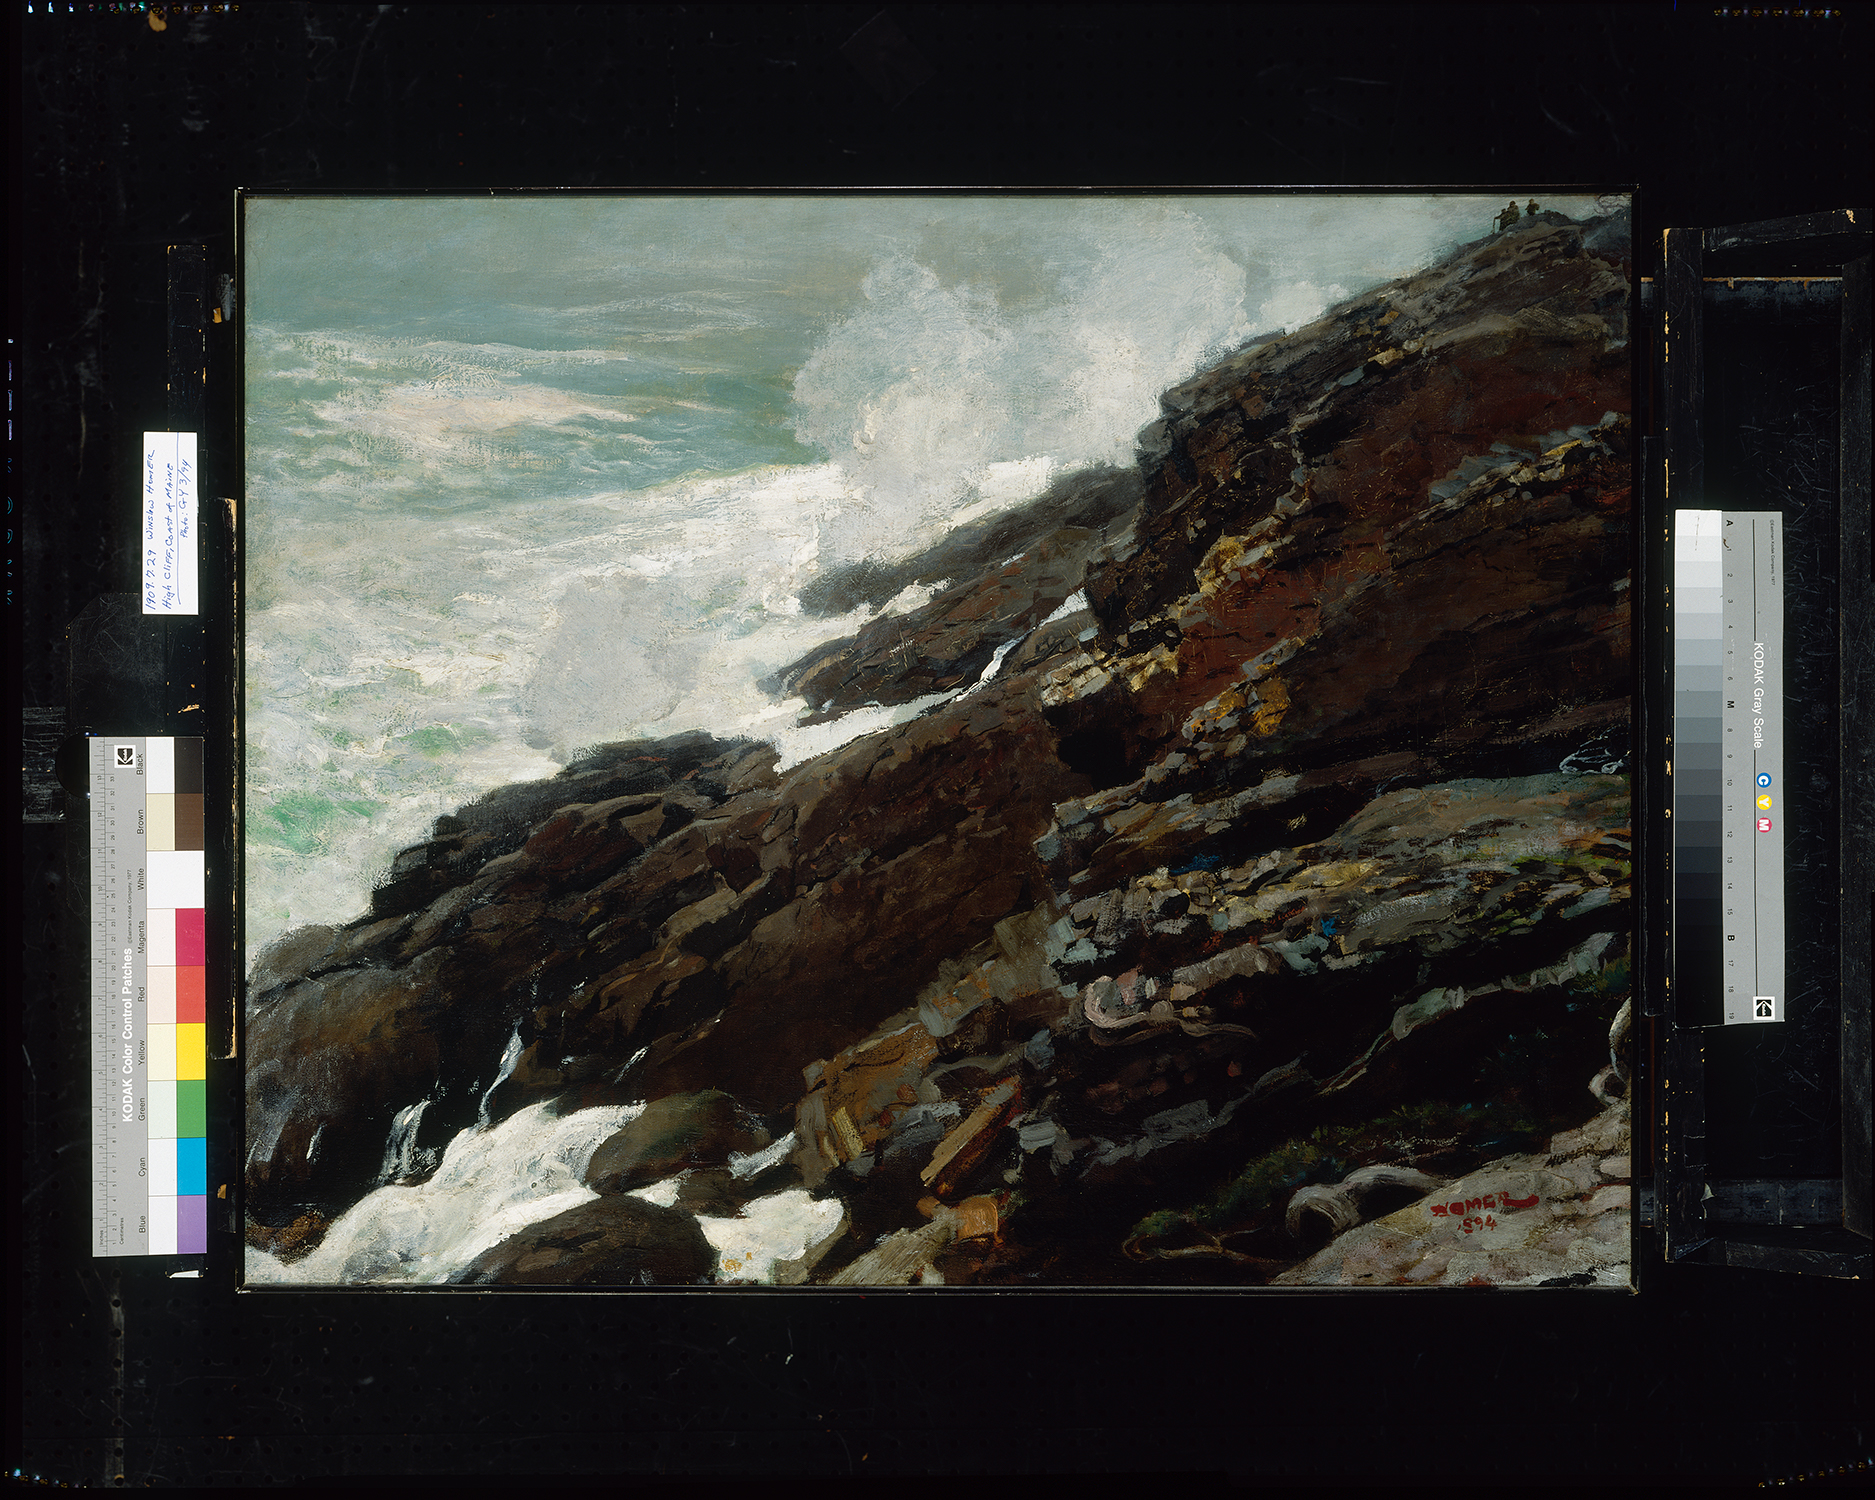 High Cliff, Coast of Maine Winslow Homer; 1894 Smithsonian American Art Museum, Gift of William T. Evans